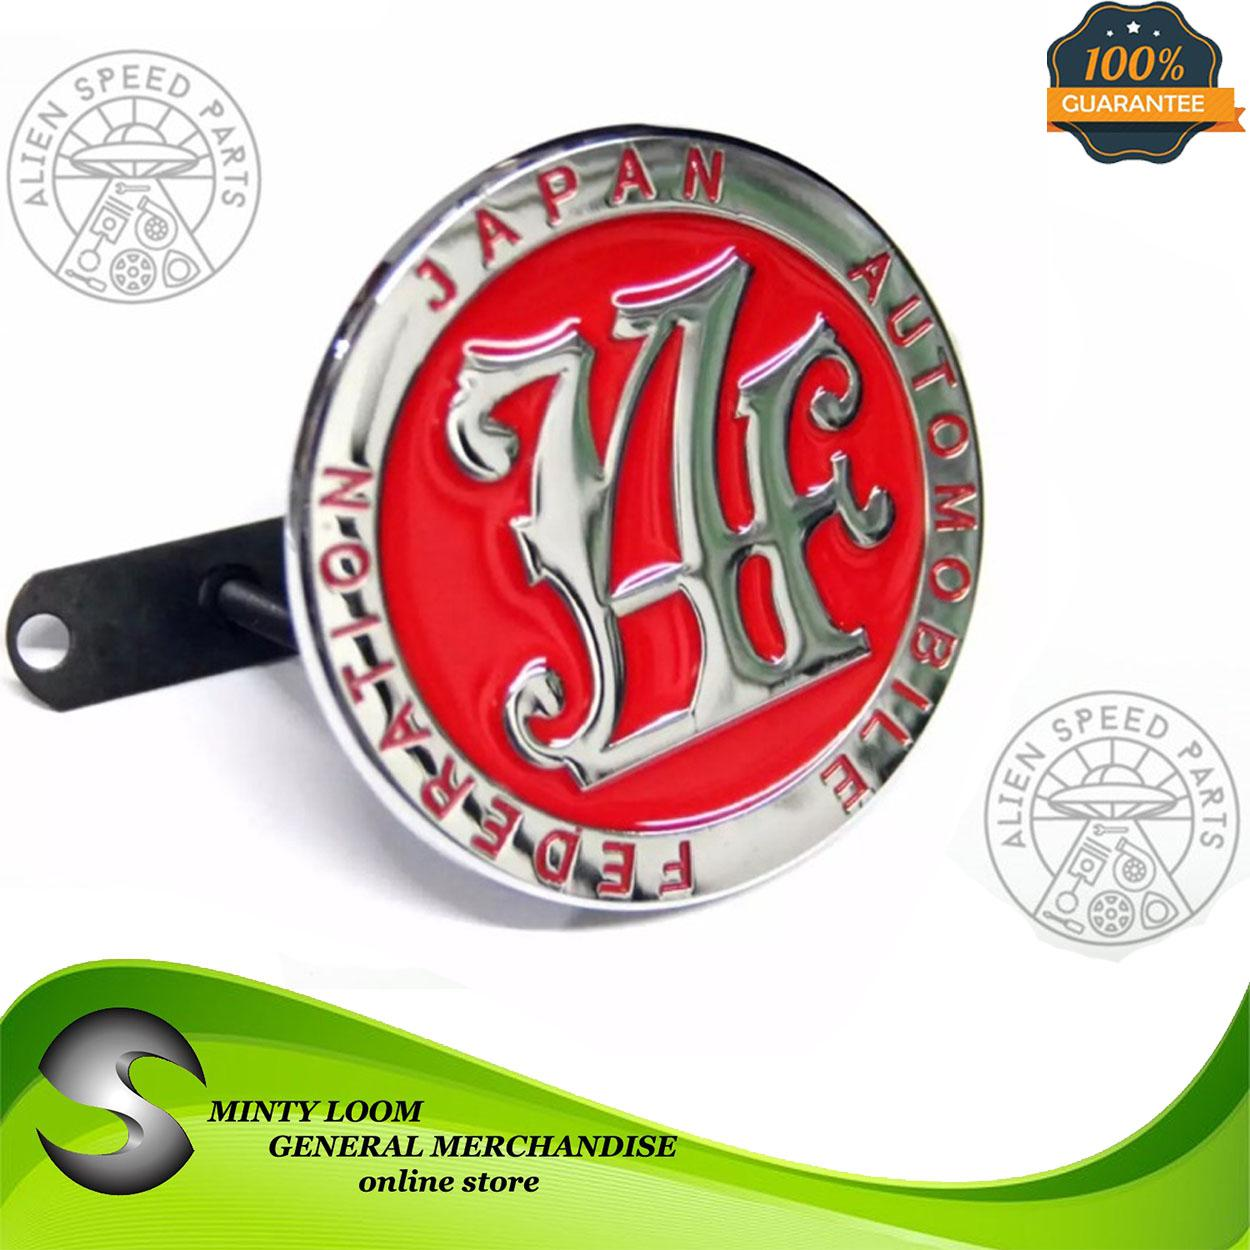 Jaf Badge Emblem For Grill (red) By Minty Loom General Merchandise.